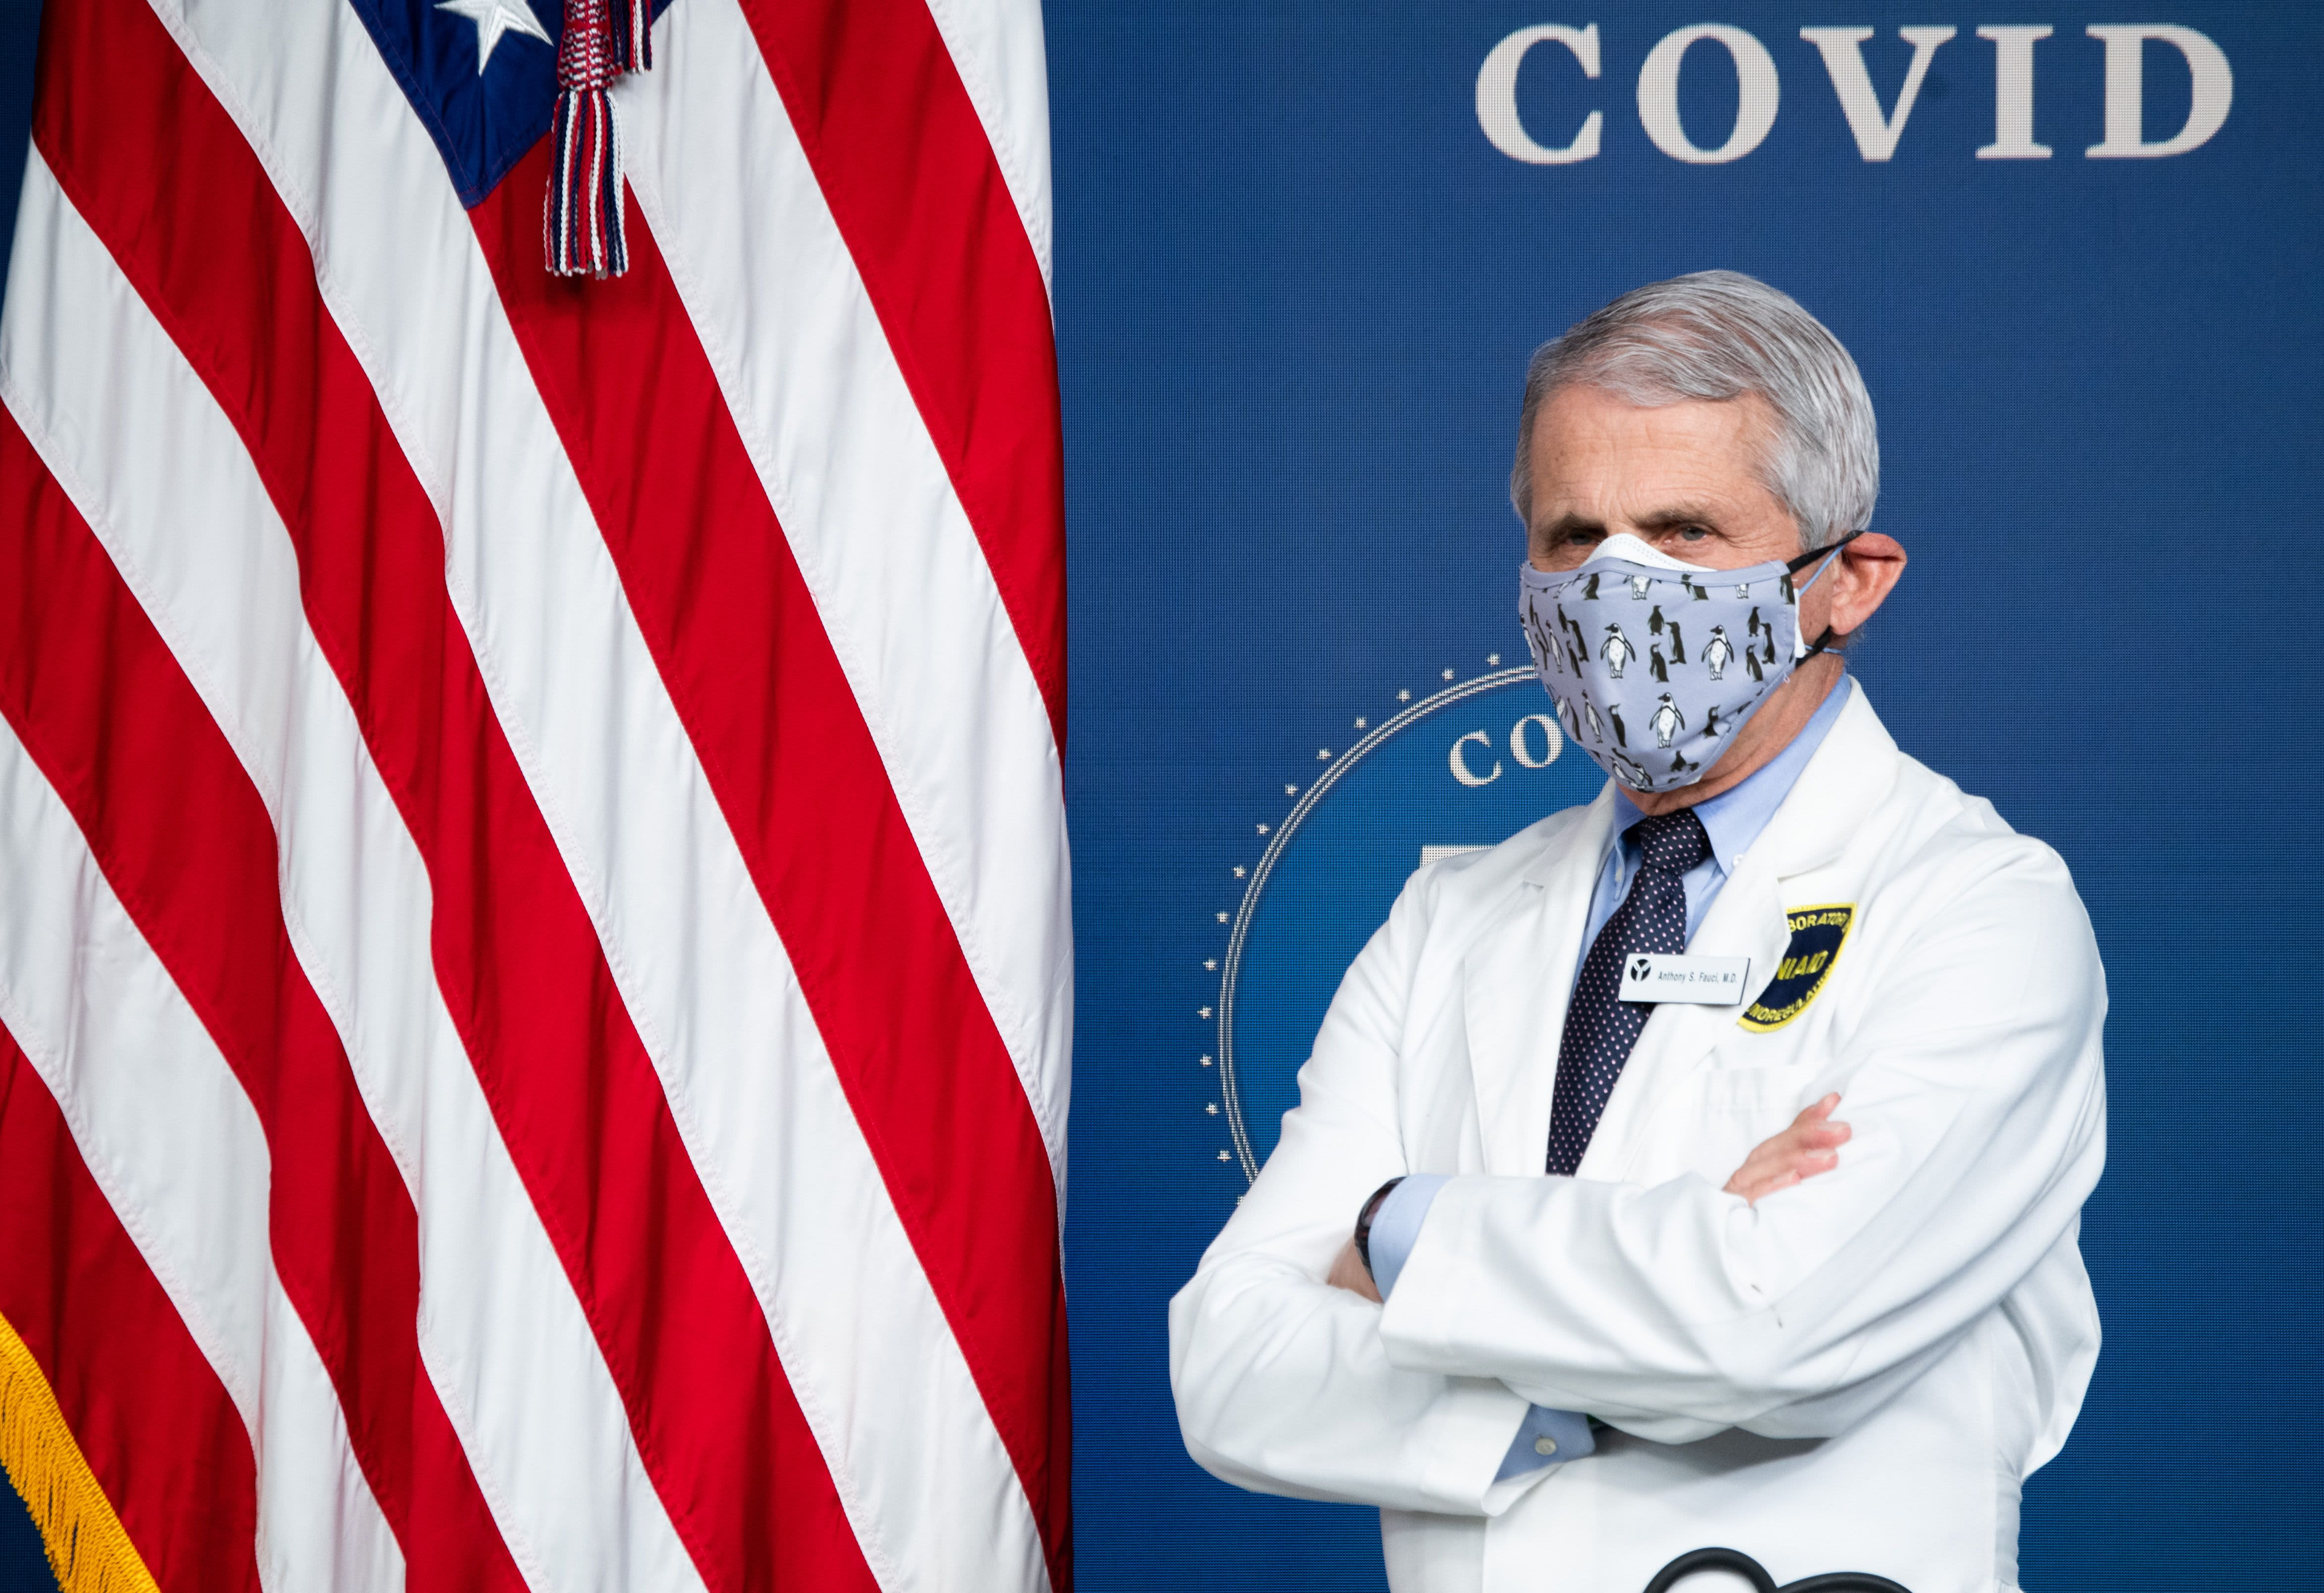 Fauci points to Covid surge in Europe as warning against lifting U.S. restrictions right now